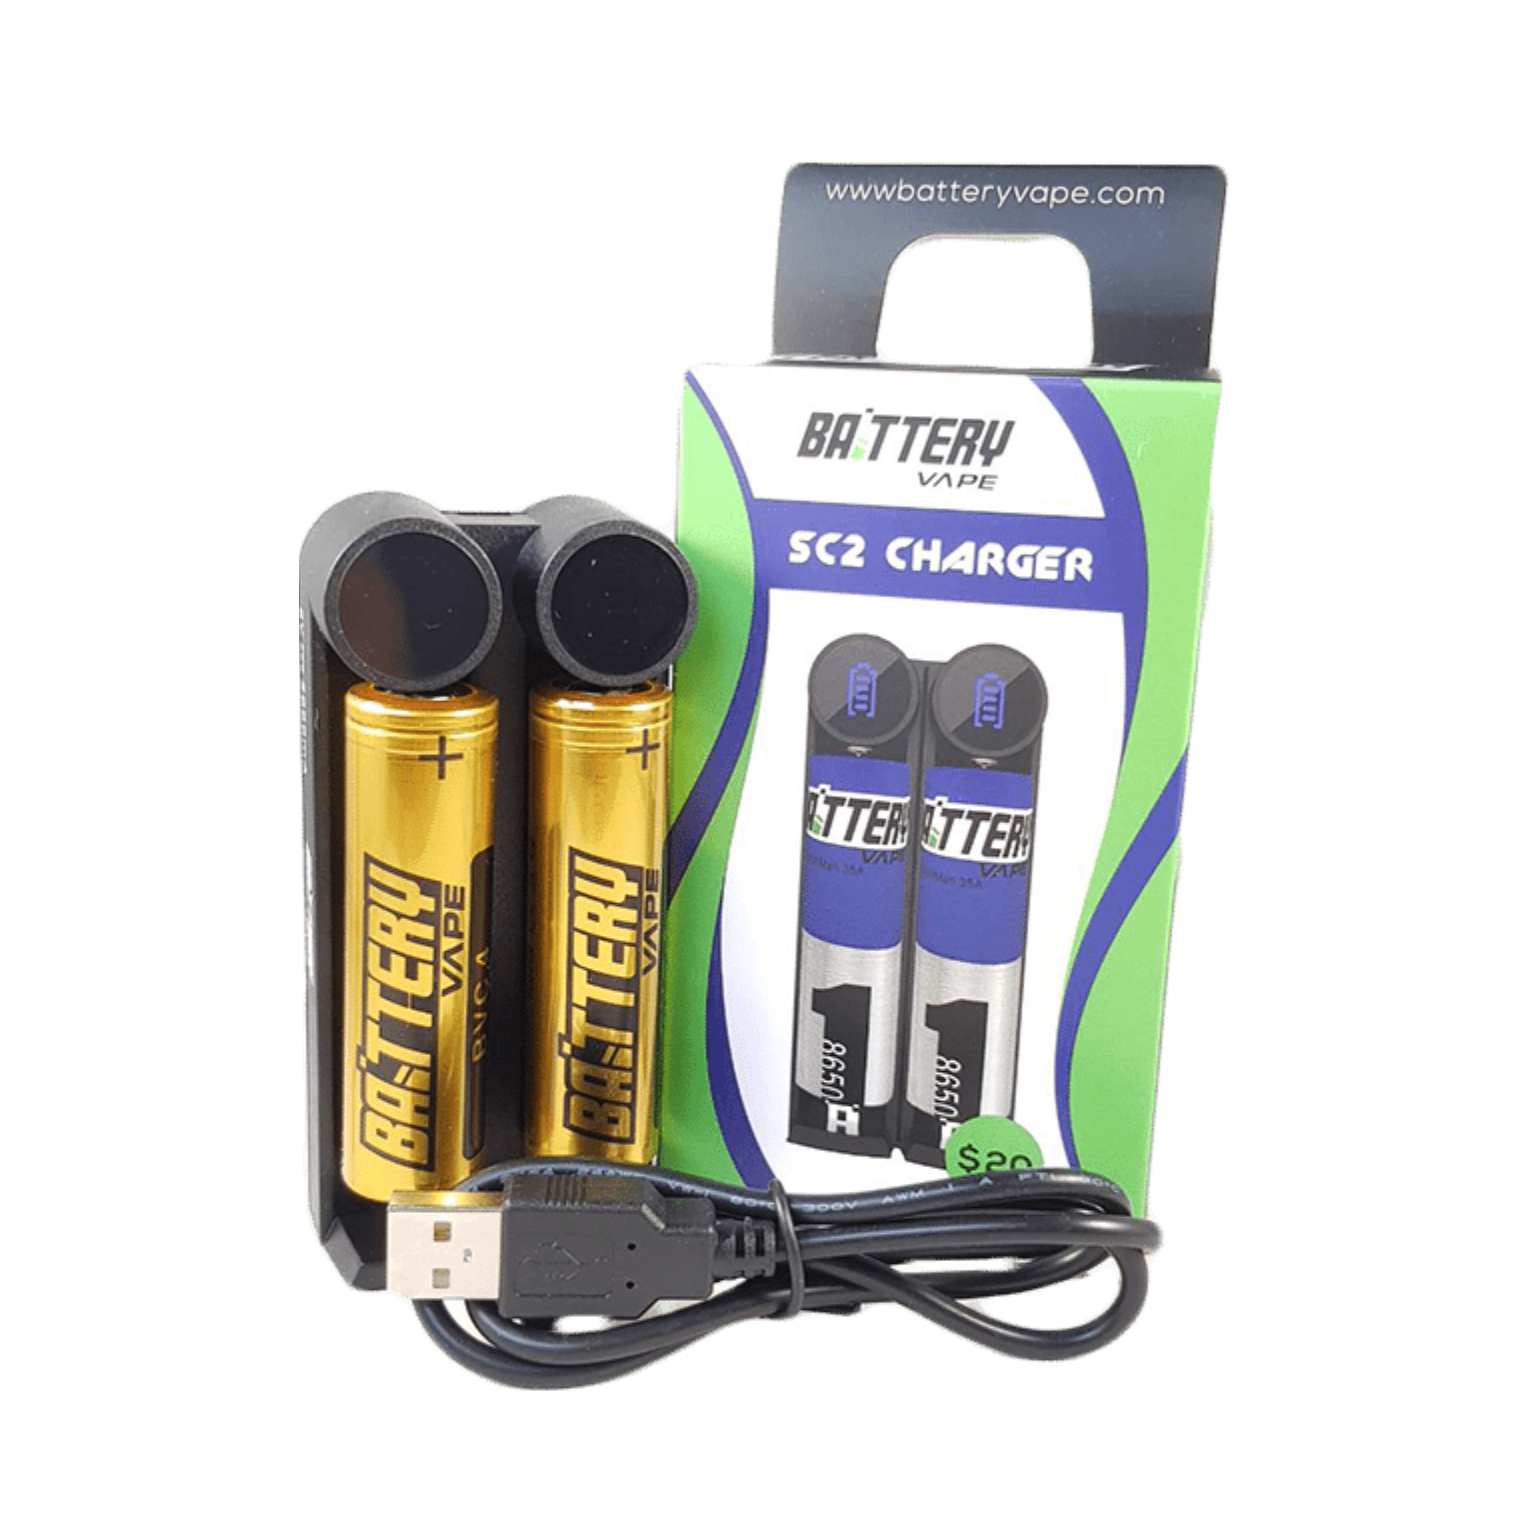 Battery Vape Chargers